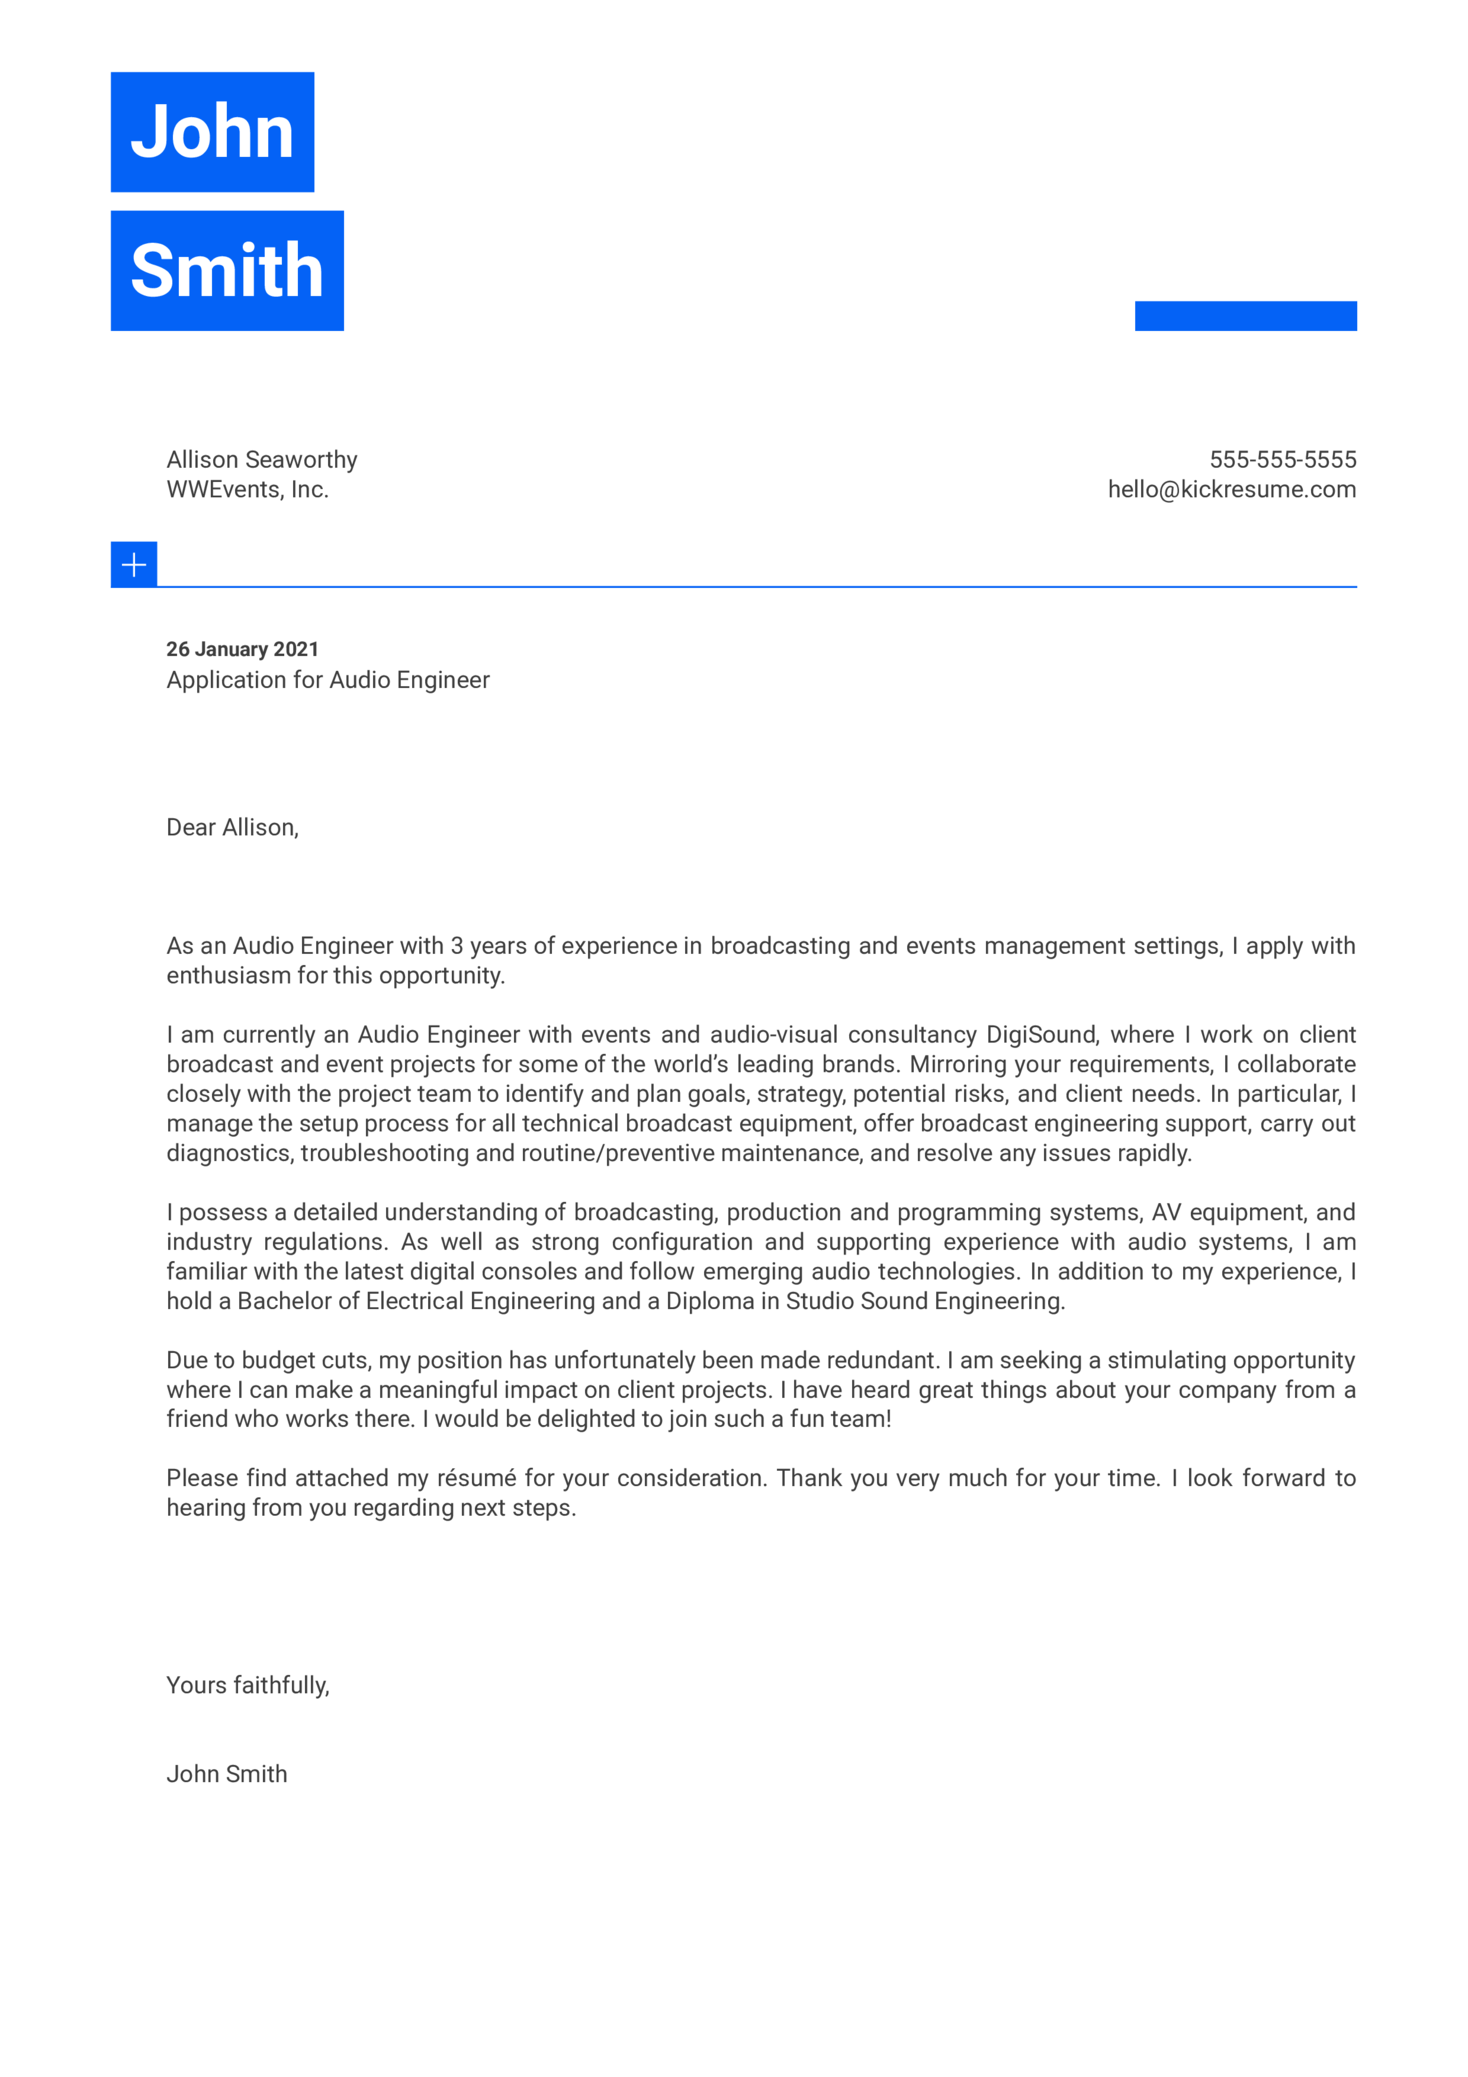 Audio Engineer Cover Letter Example